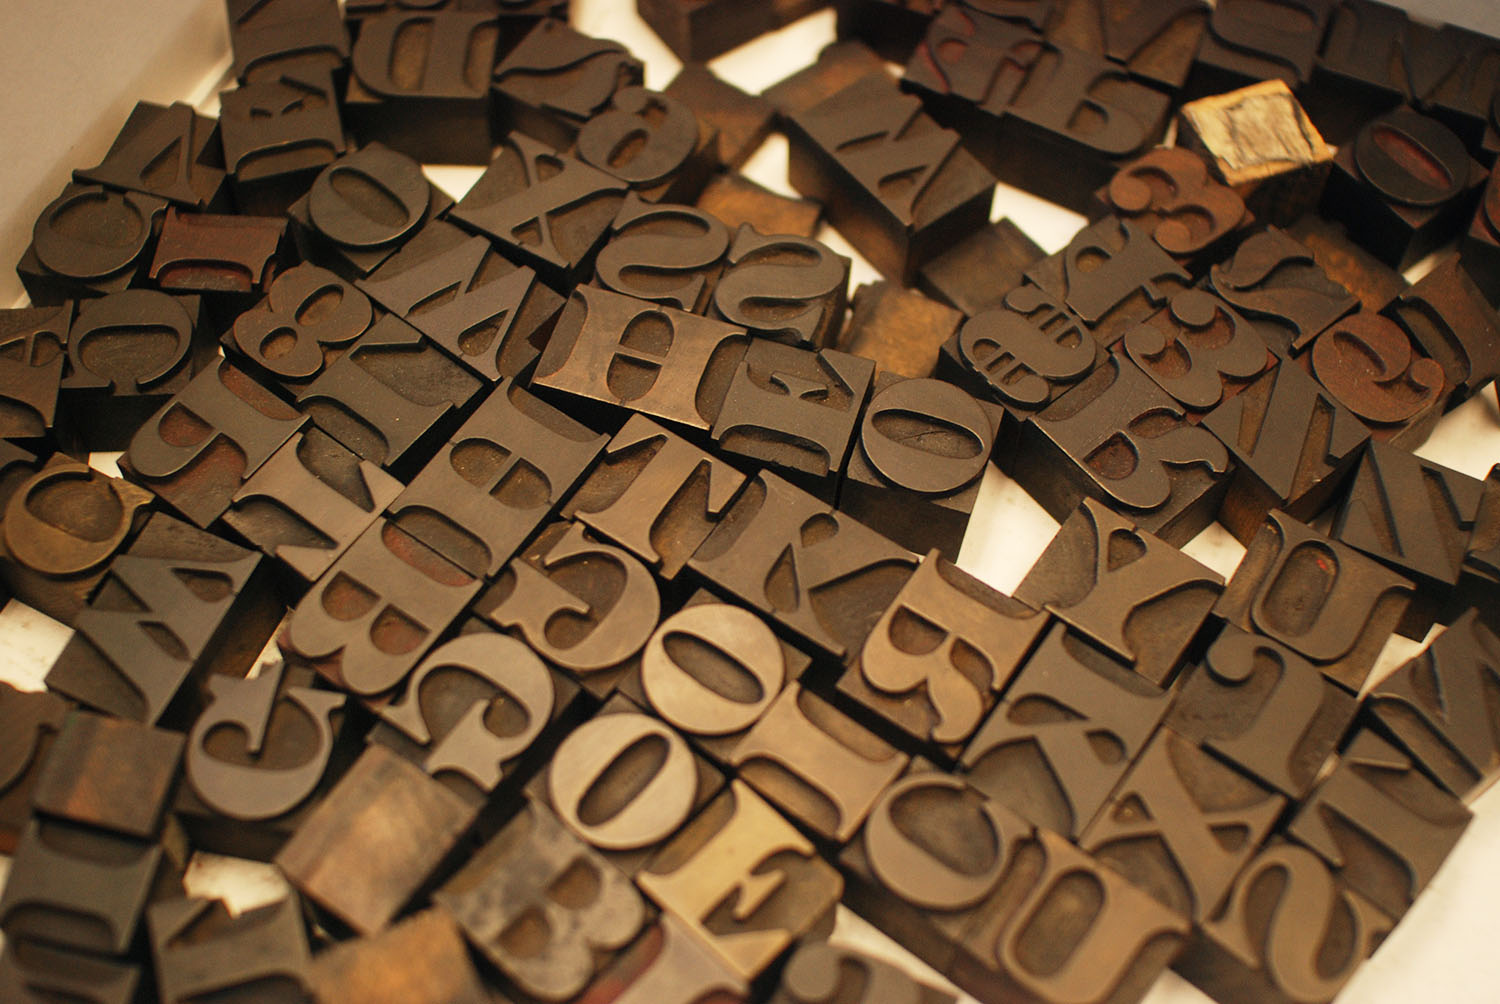 Roman Fat Face style wood type in box